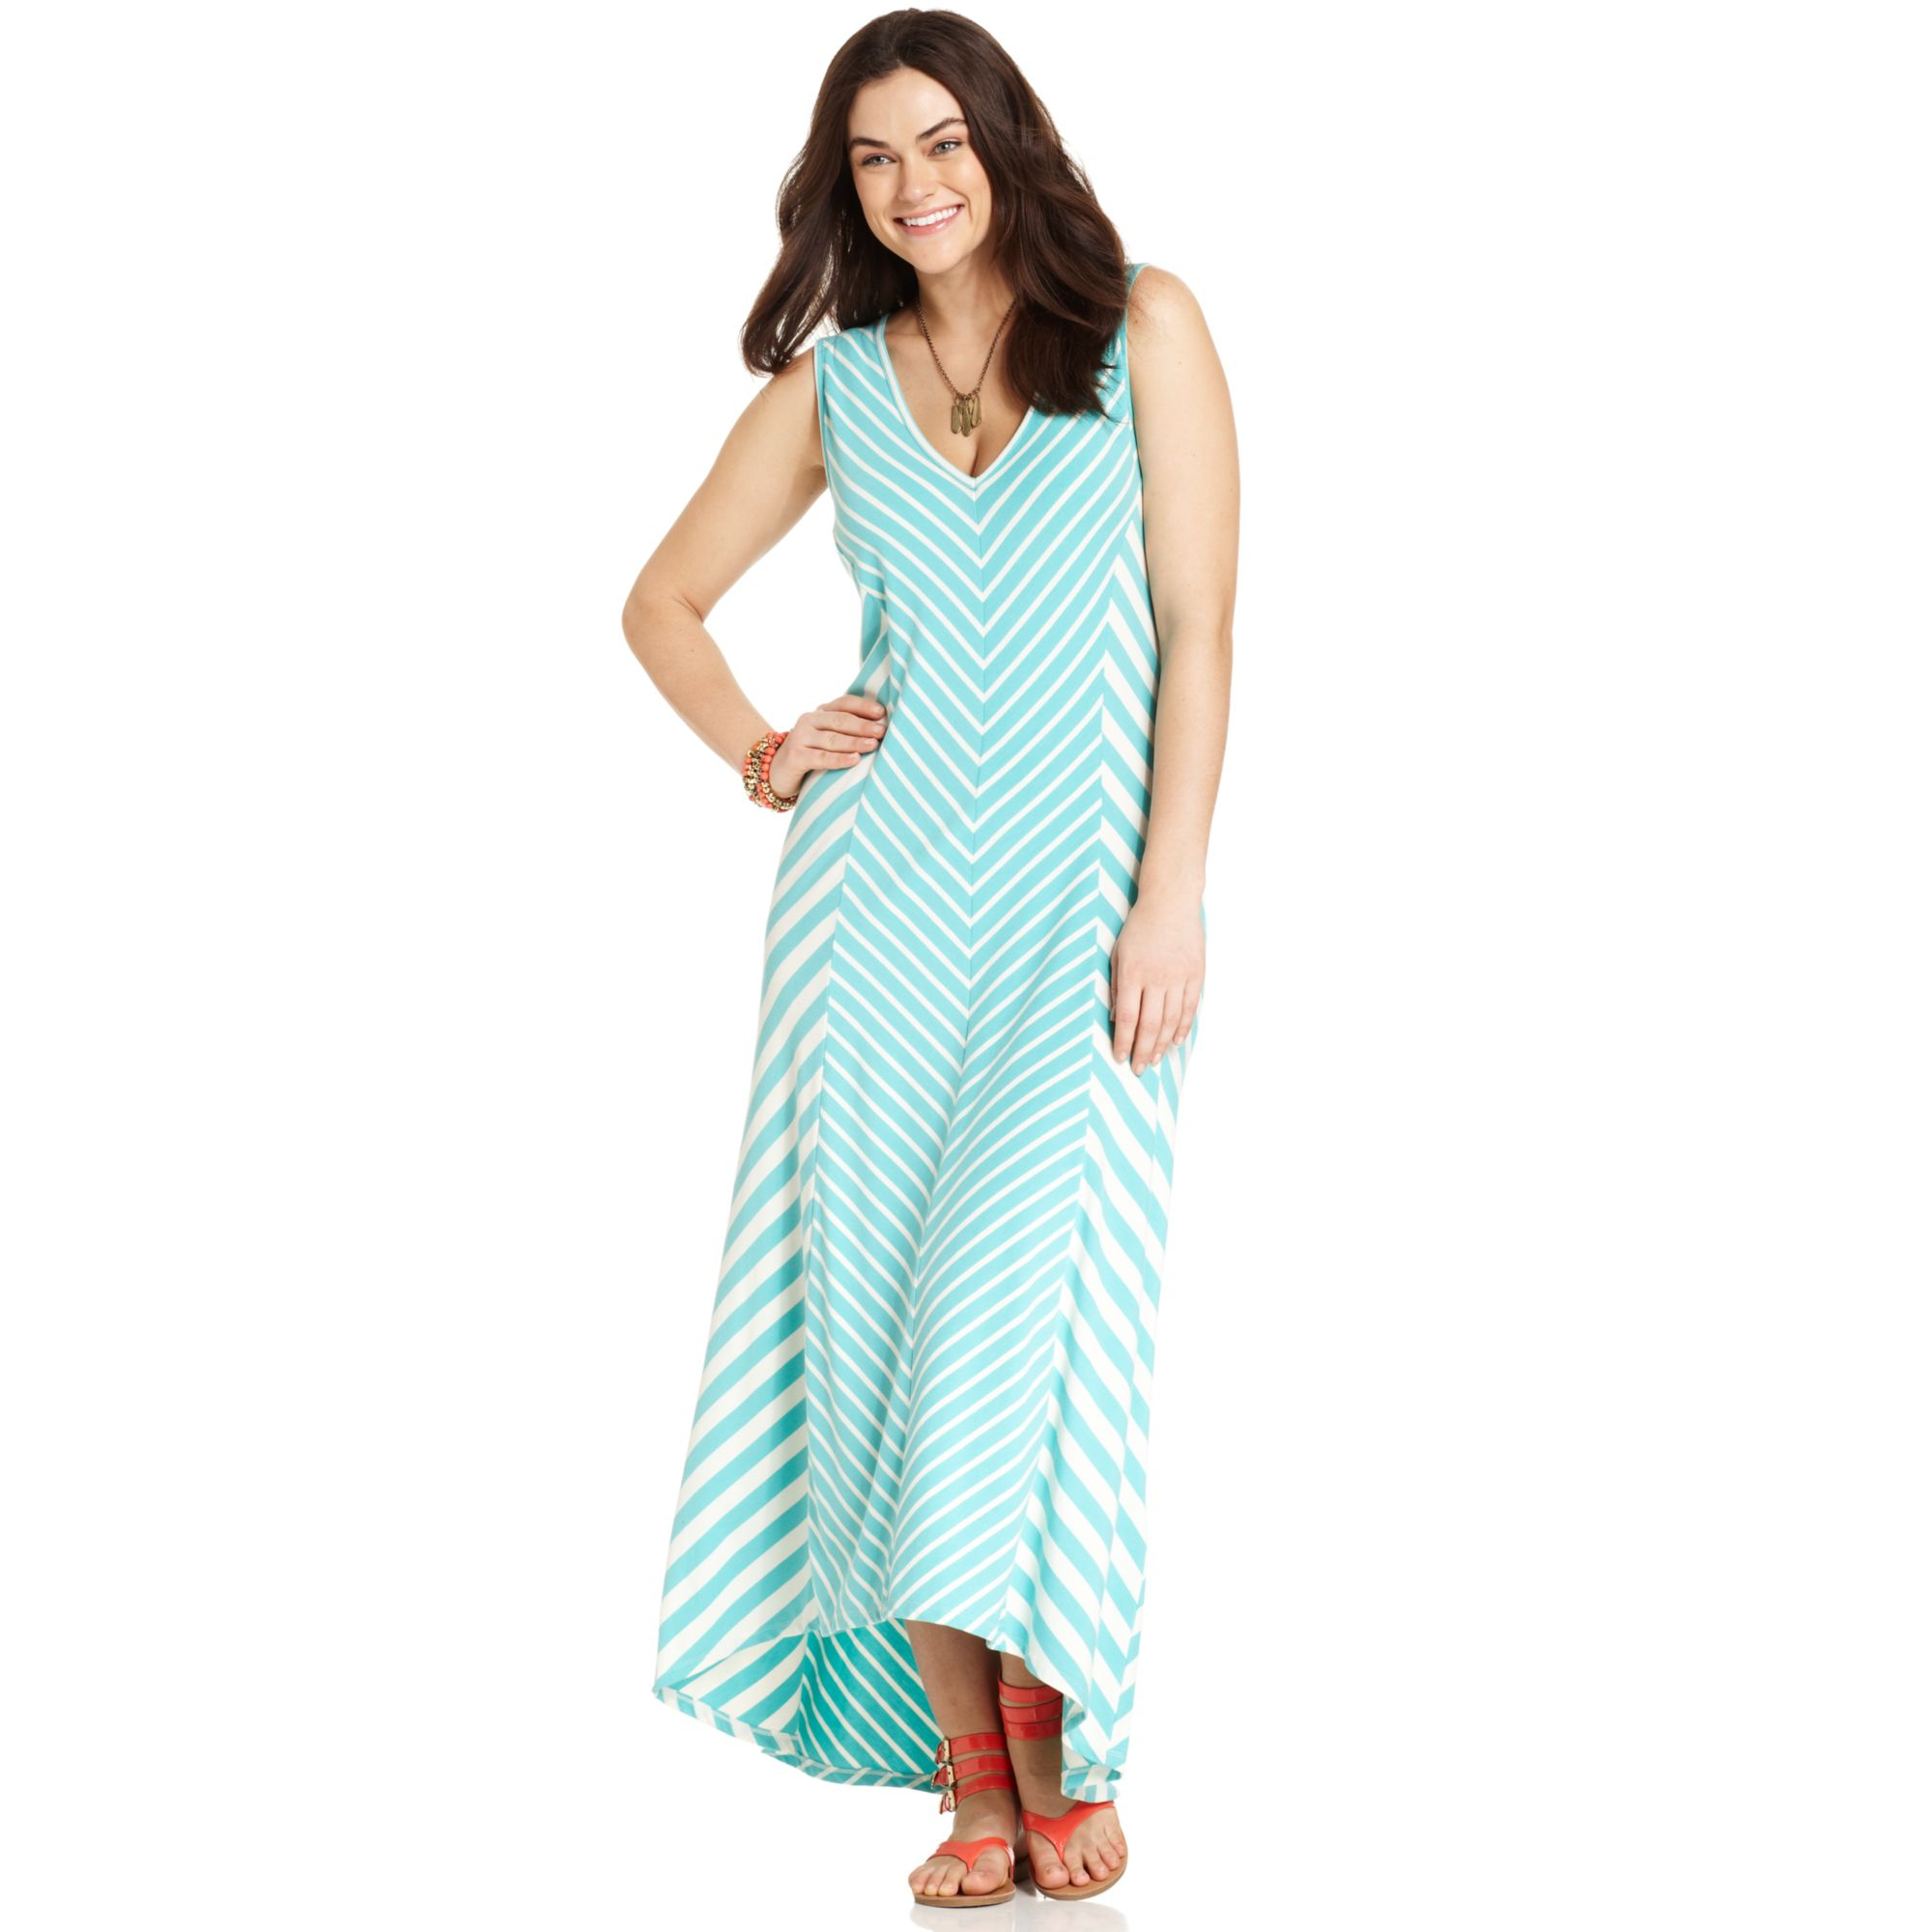 ab0a0324e1daa Find great deals on eBay for jessica simpson maxi dress and jessica simpson  maternity.